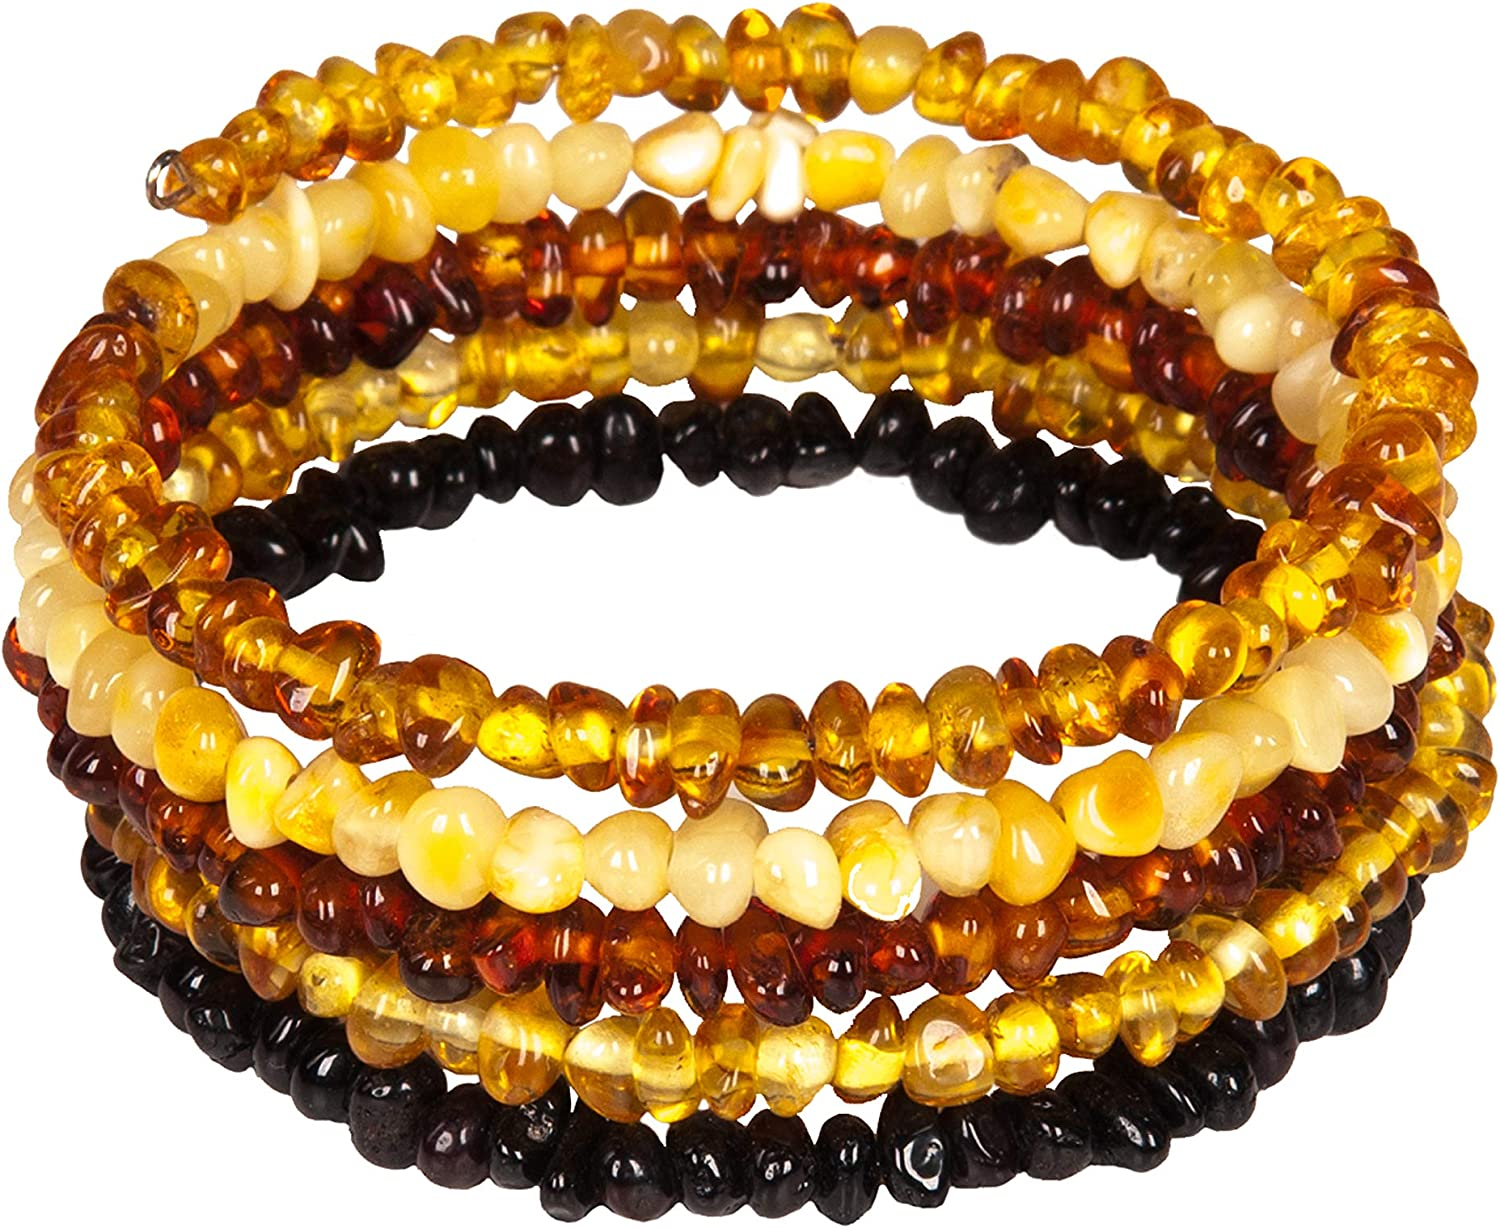 Natural Baltic Amber Bracelet for Adults - Hand made From Polished  /Certified Baltic Amber Beads(Multi): Amazon.ca: Jewelry